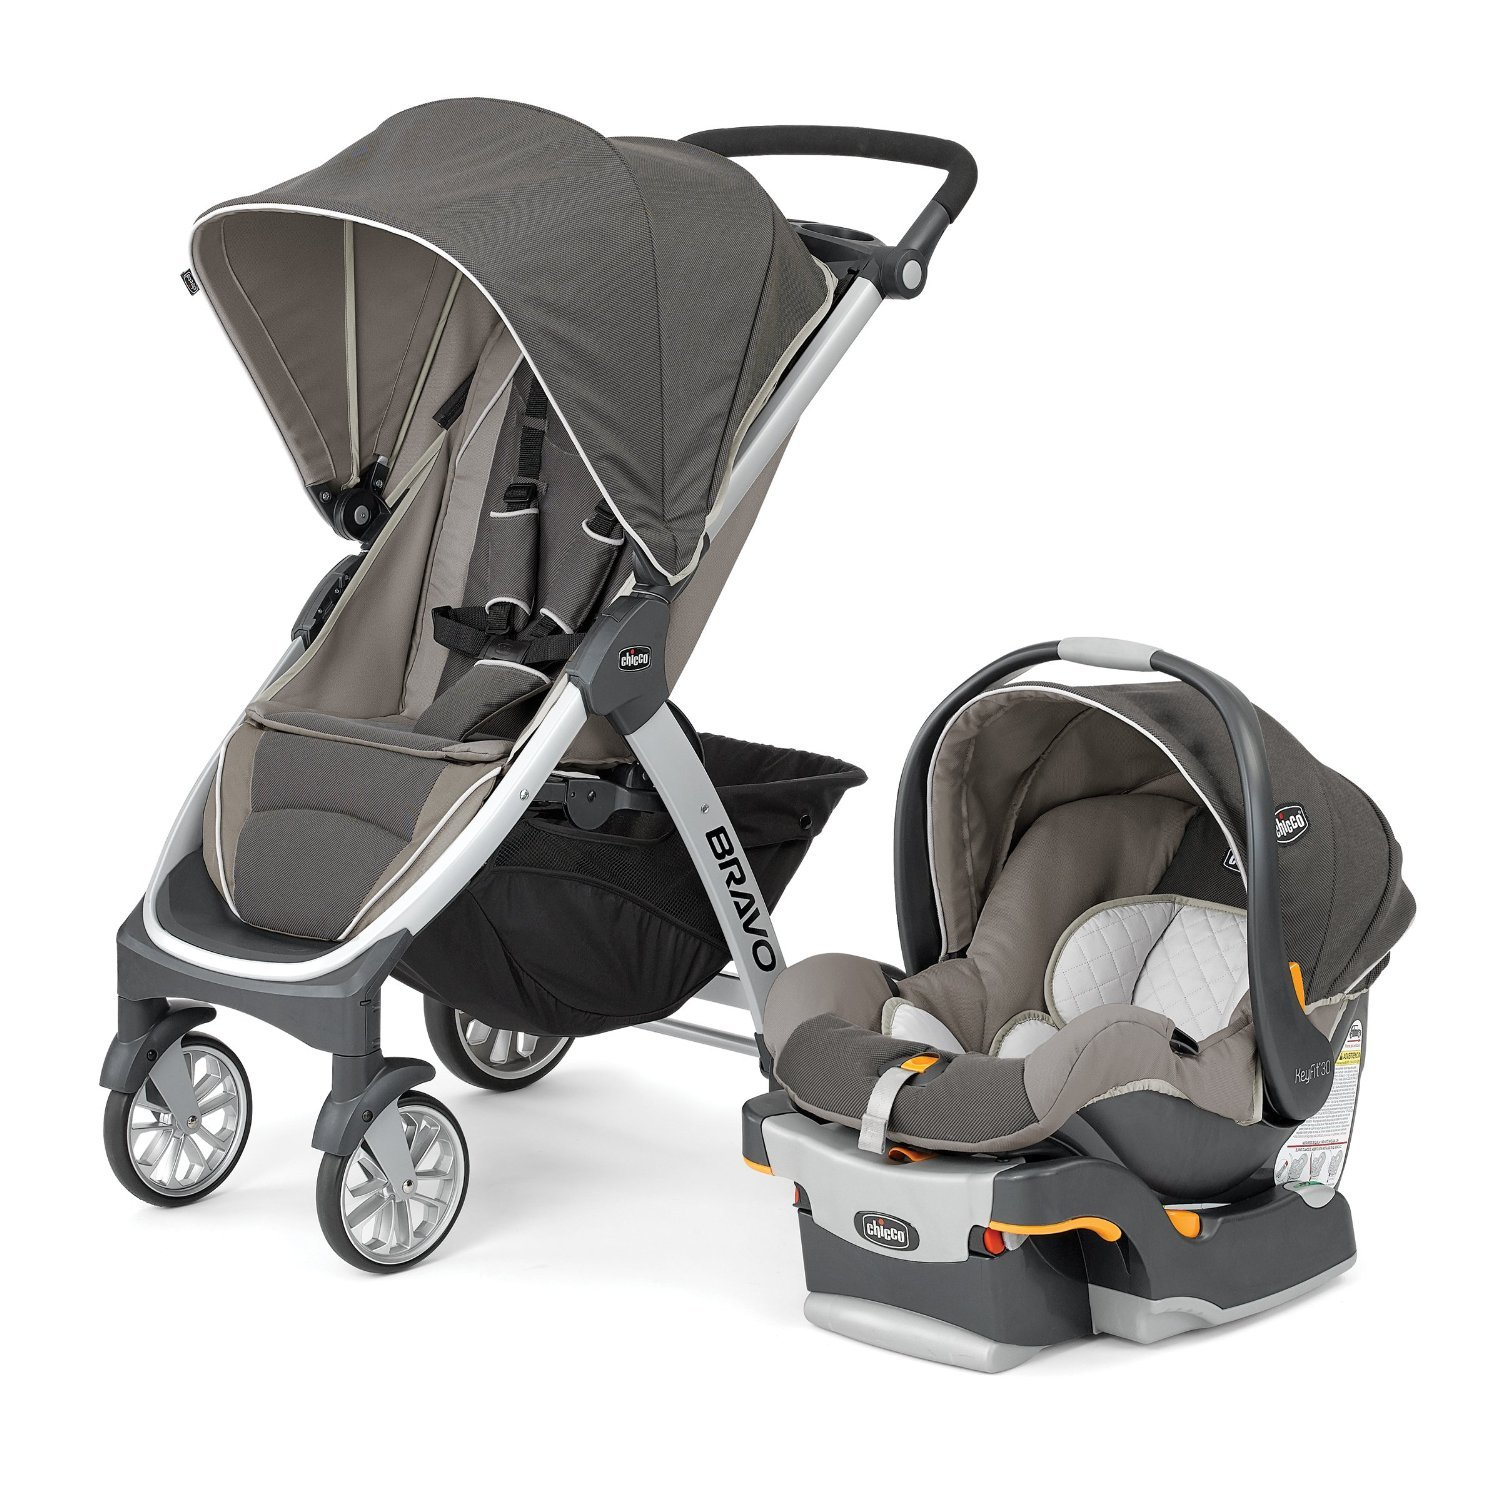 Best Baby Stroller Travel System in 2017